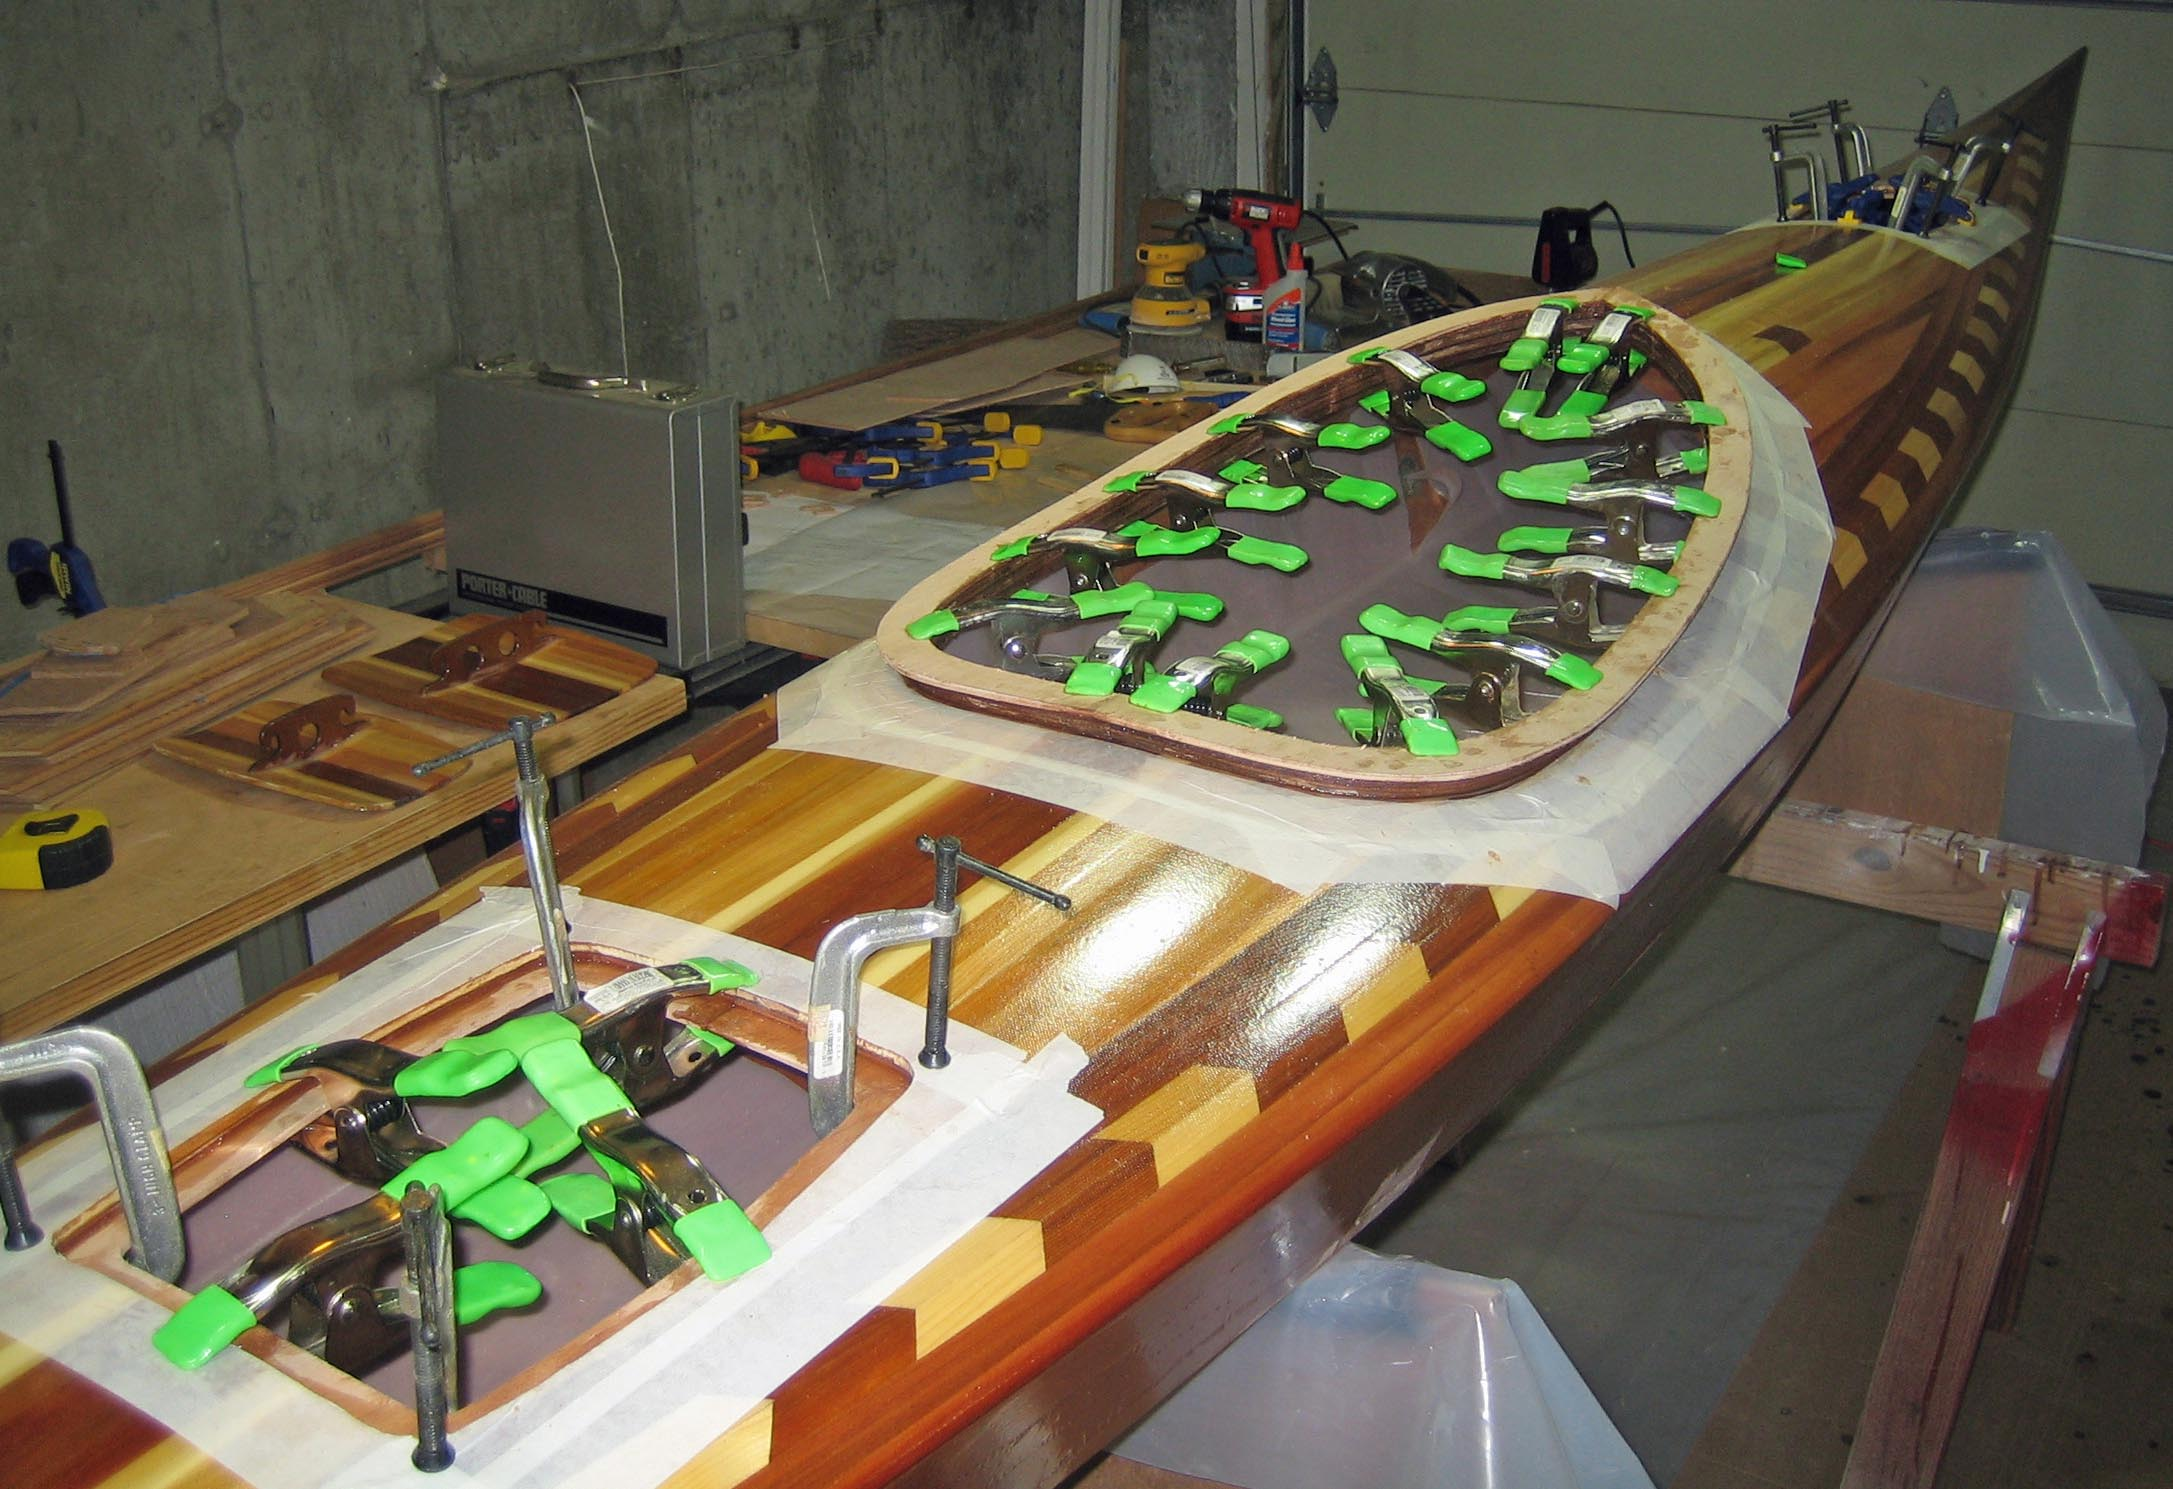 Coaming Clamps